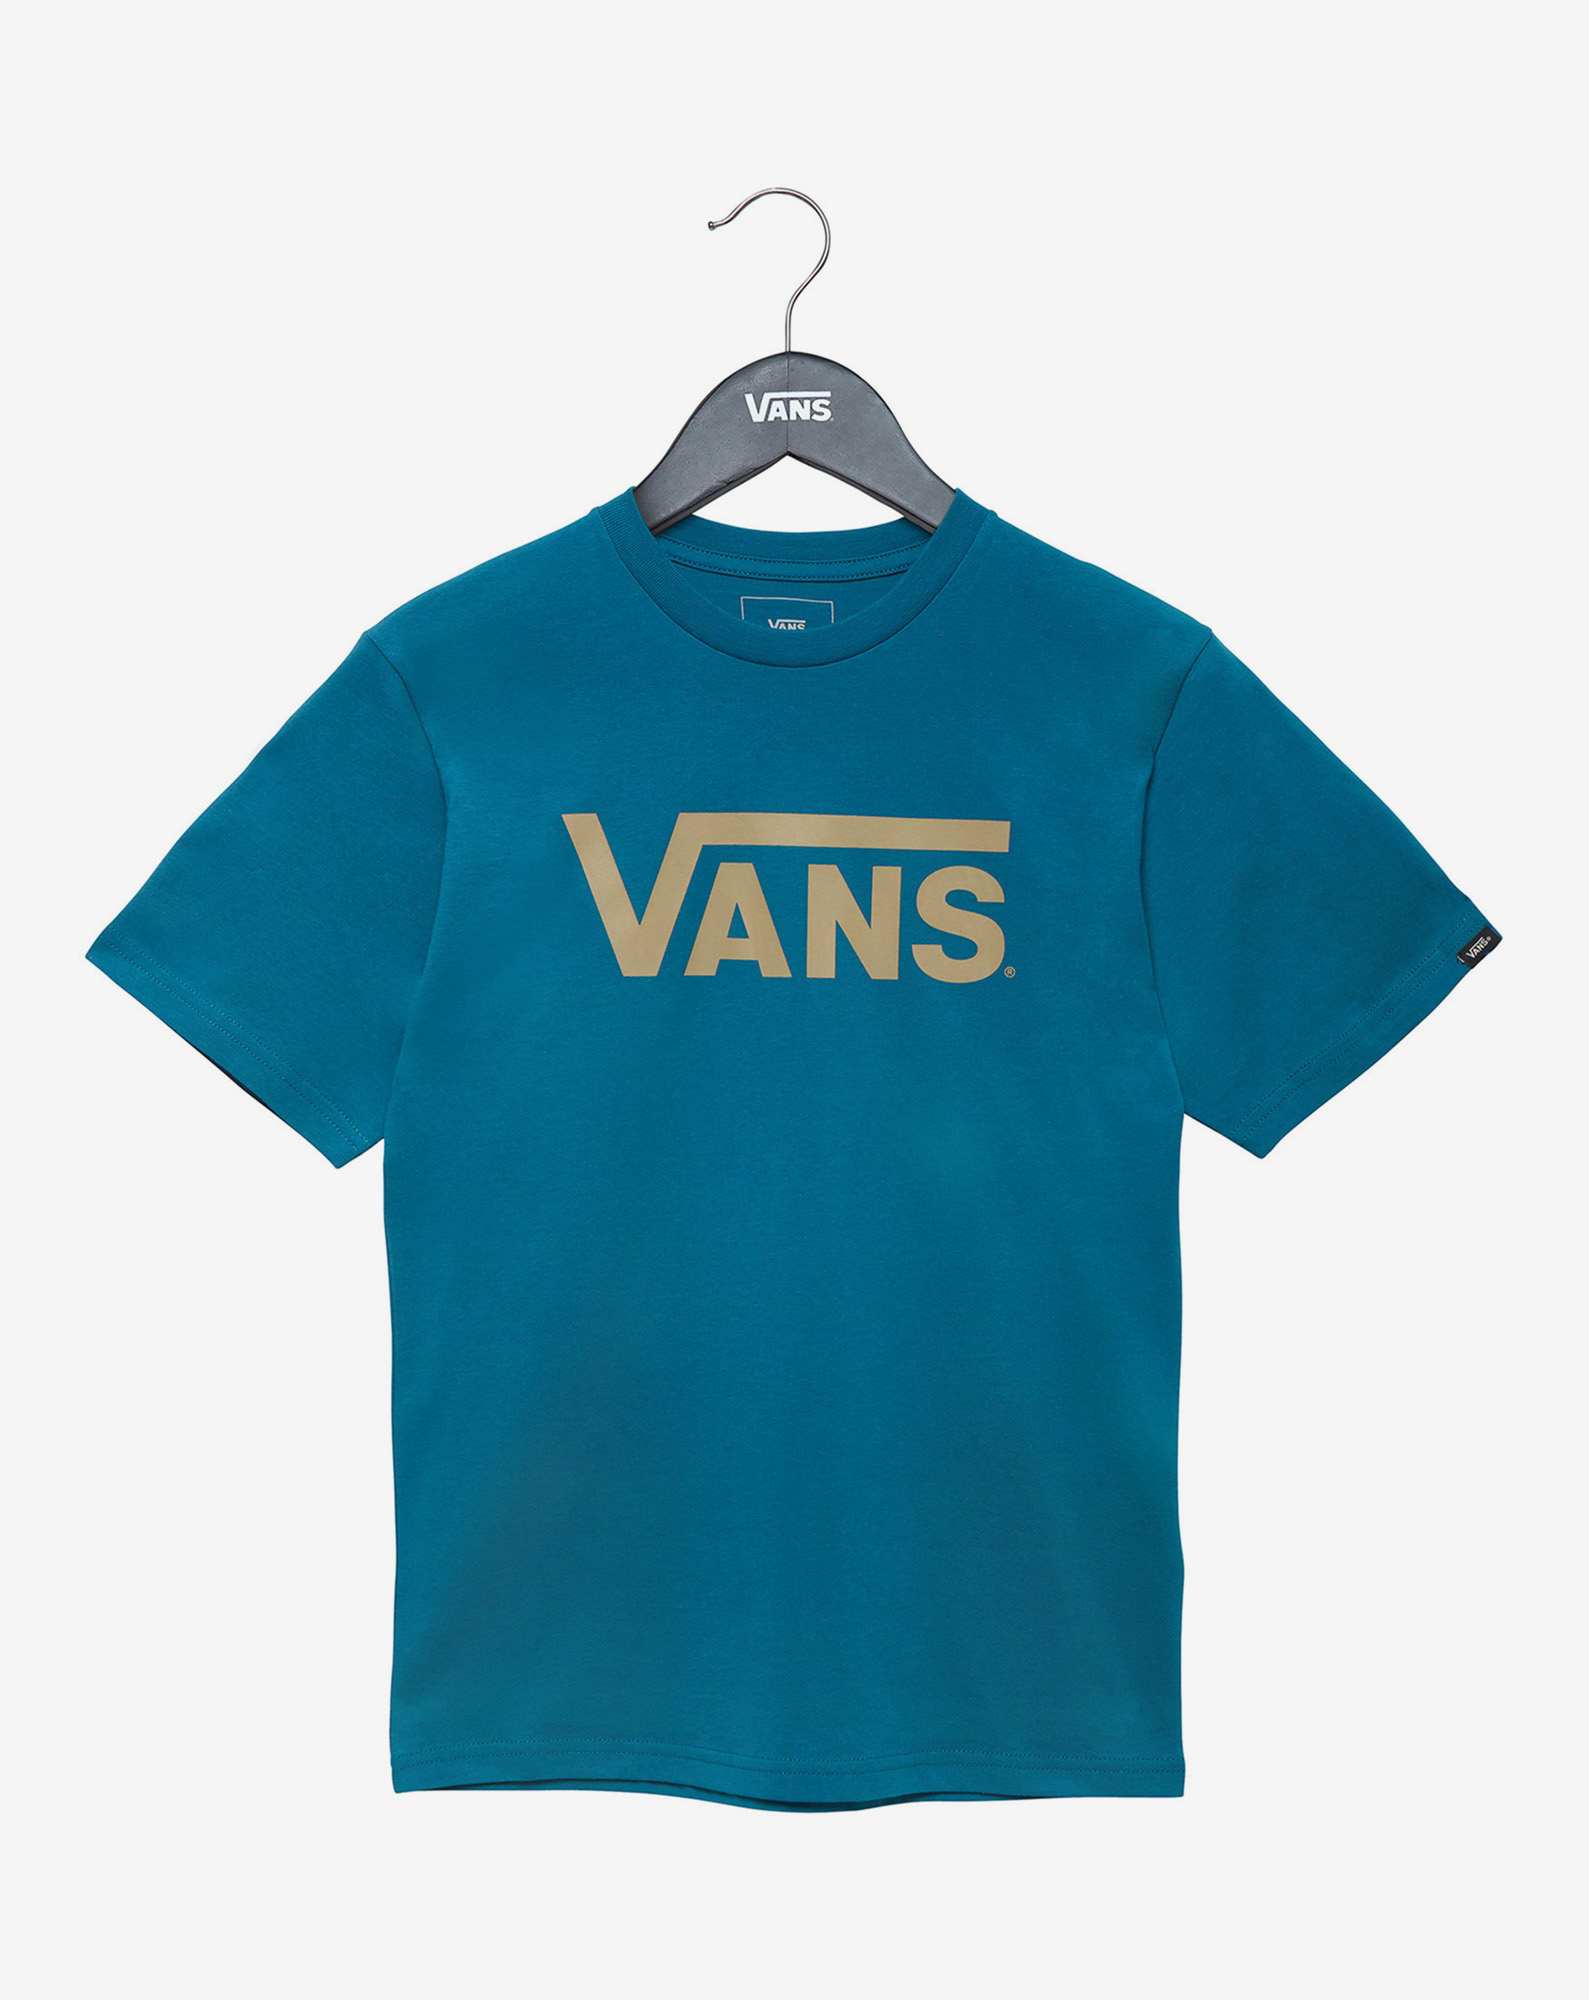 BY VANS CLASSIC BOYS CORSAIR/KHAK